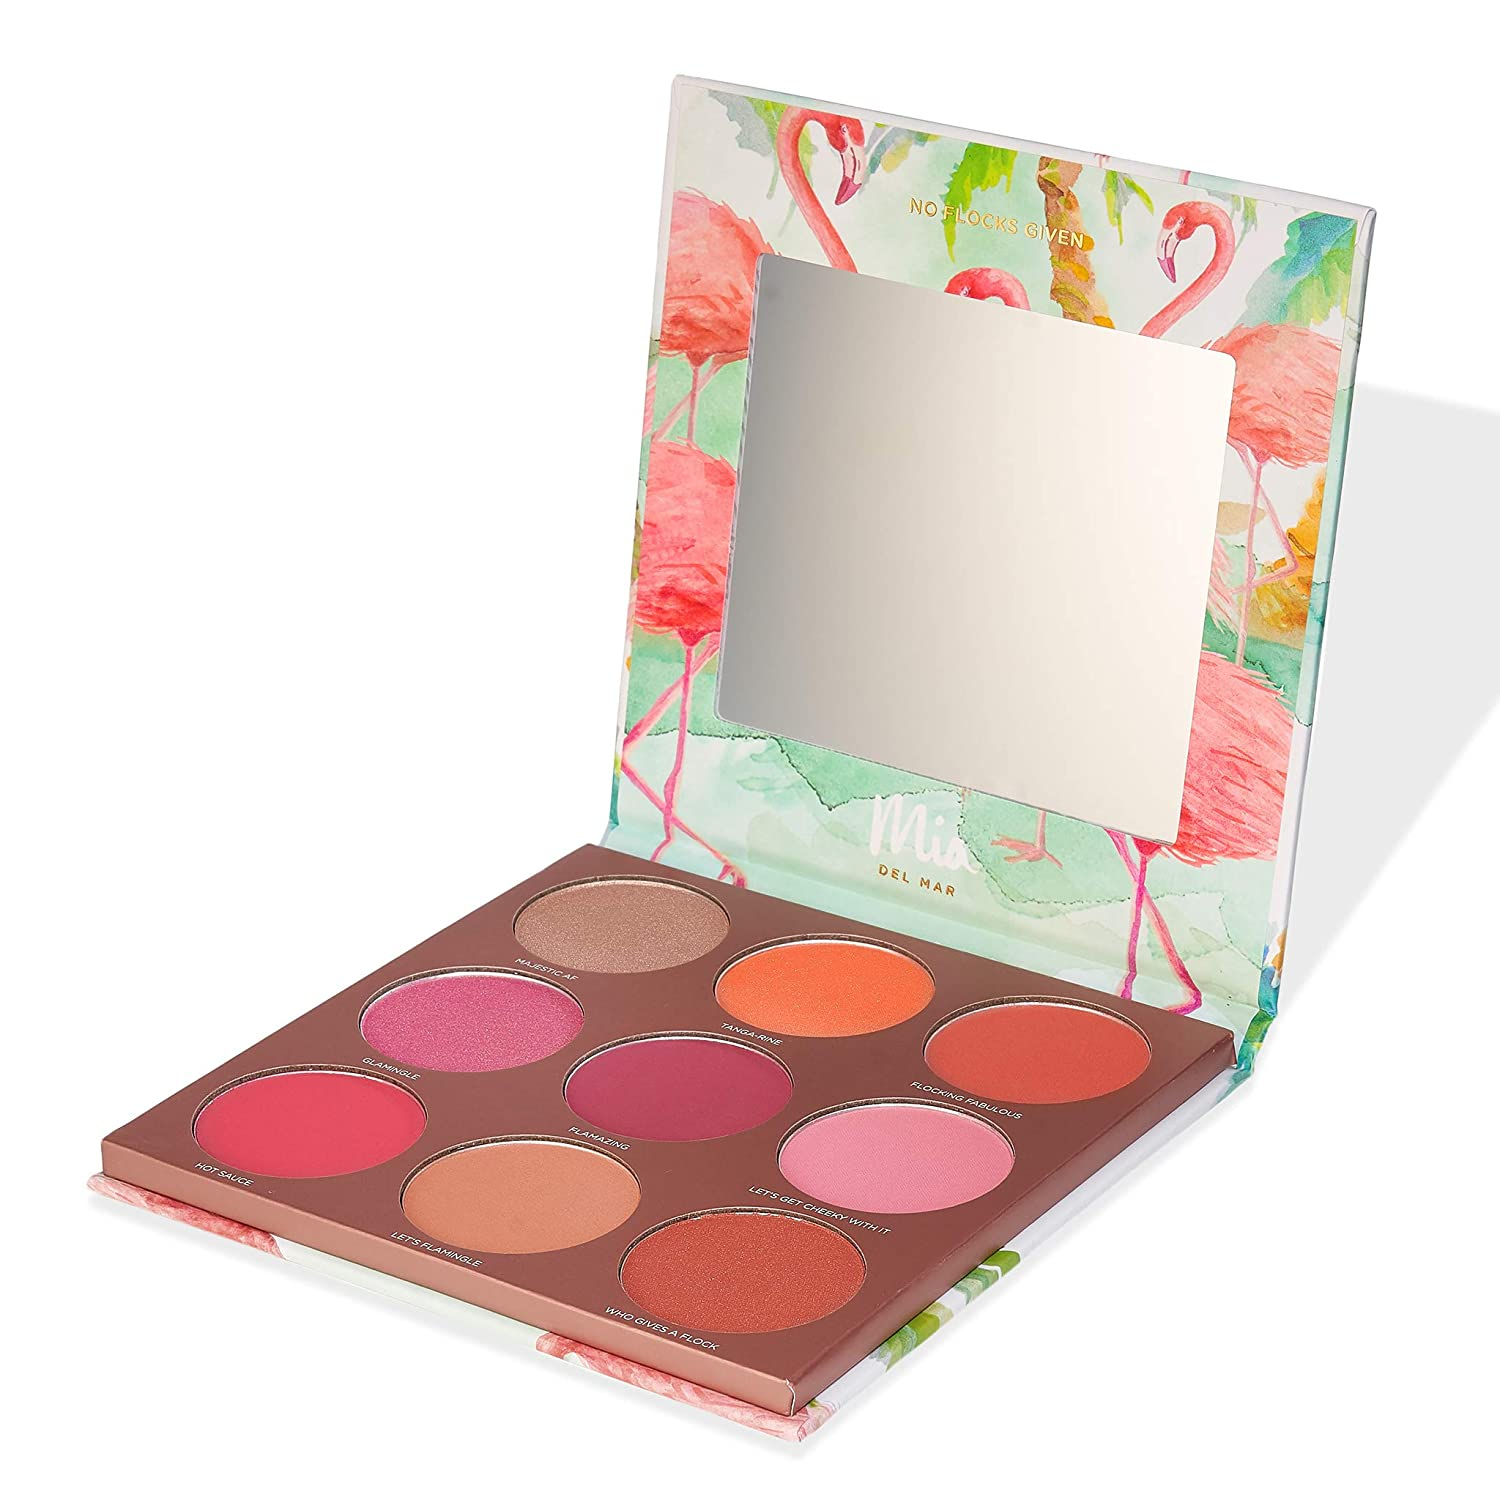 Flamingoals Blush Palette – 9 Shades of Reds and Pinks For All Skin Tones. Vegan And Clean Skin Care.